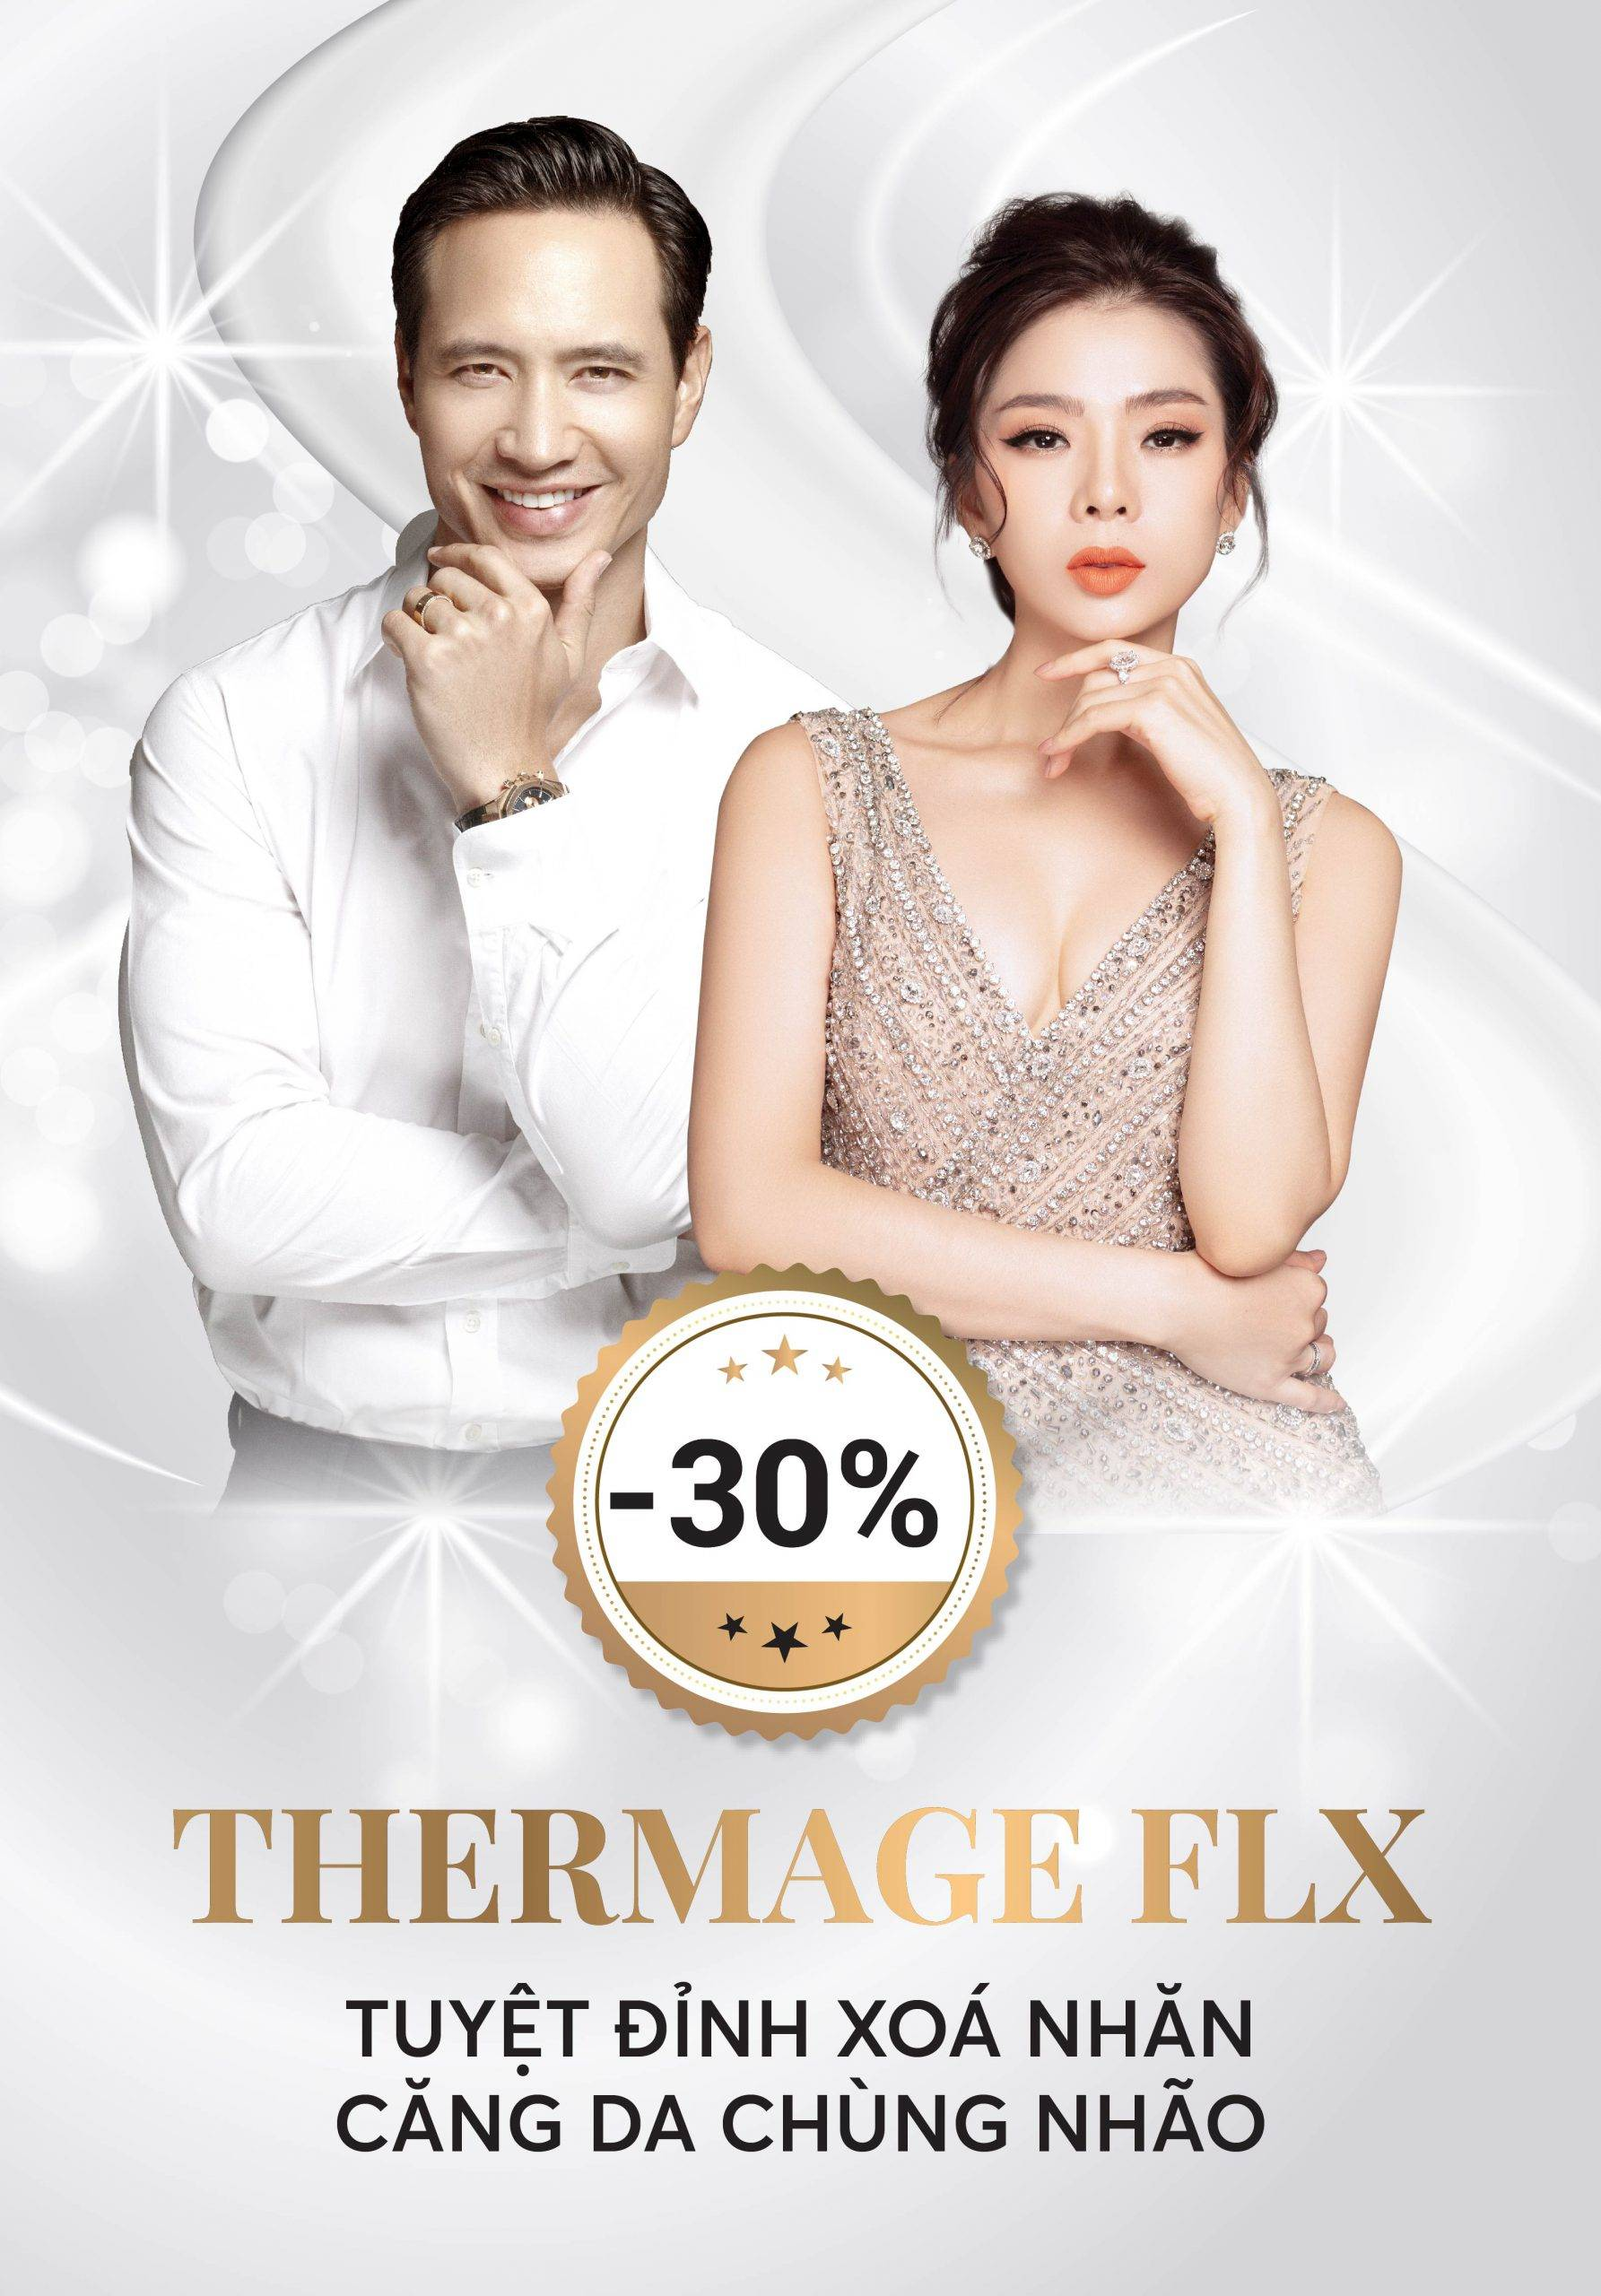 mobile-thermage-flx